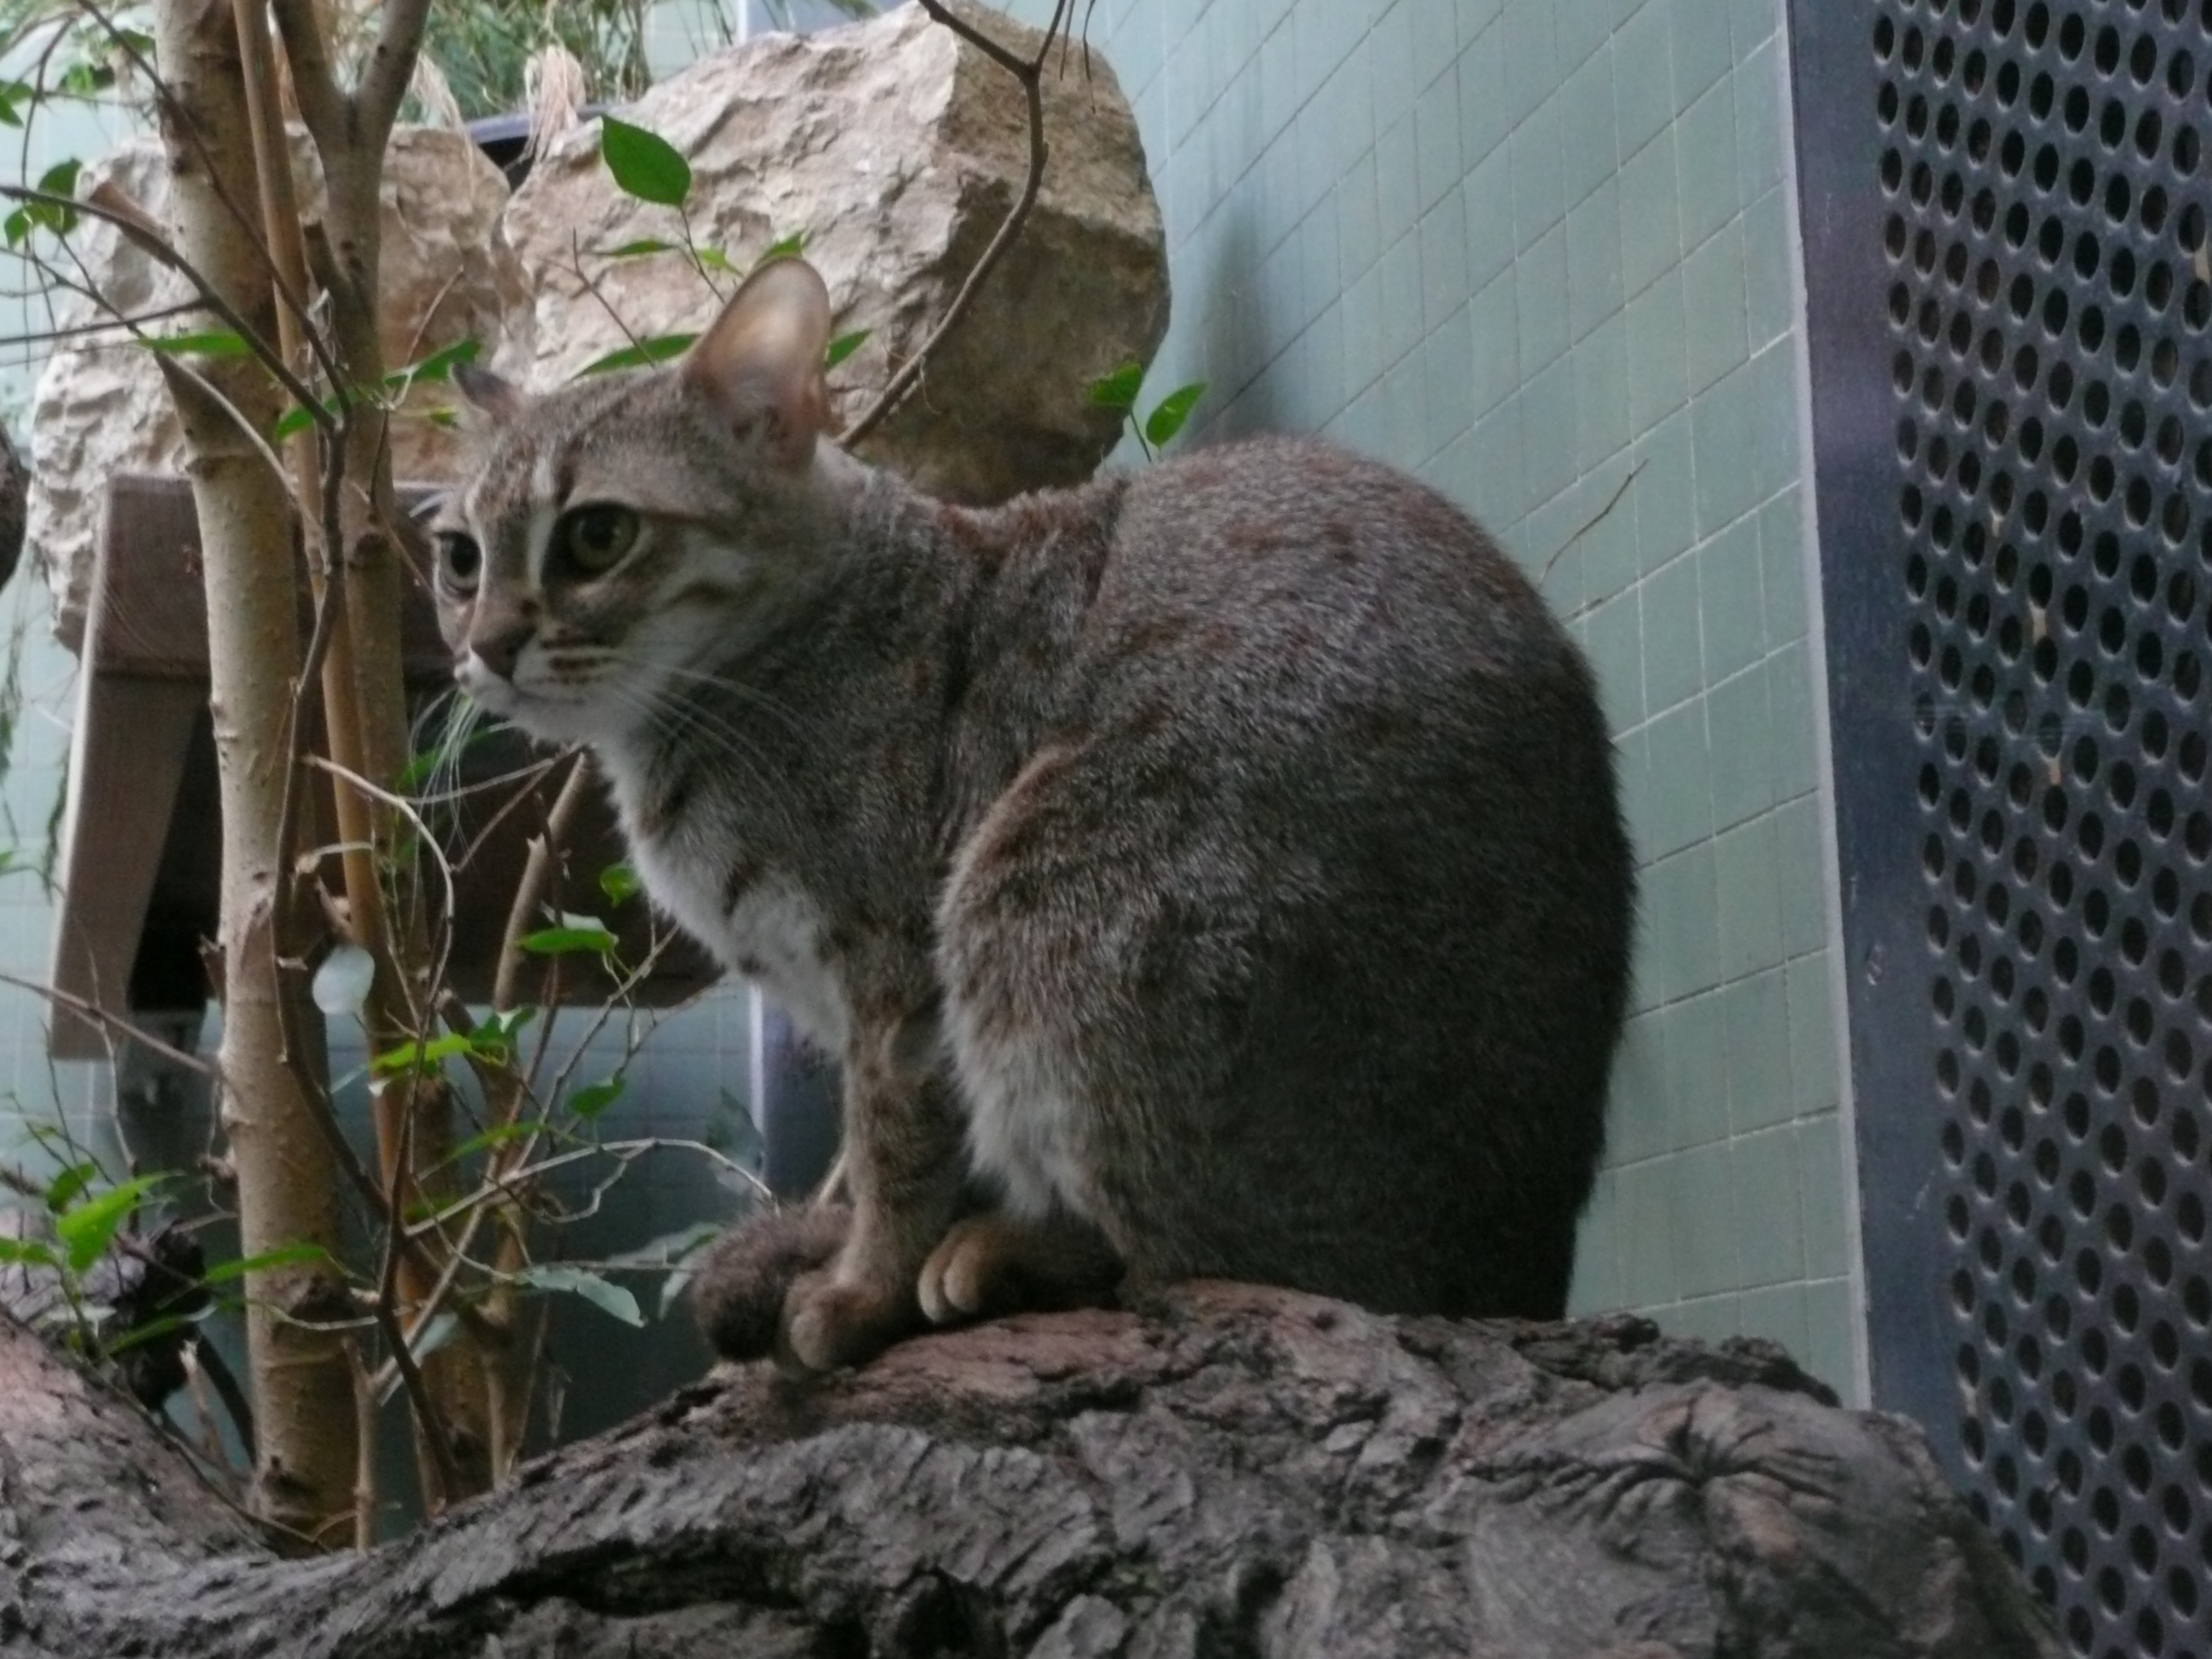 http://upload.wikimedia.org/wikipedia/commons/2/20/Rostkatze_Zoo_Berlin.JPG